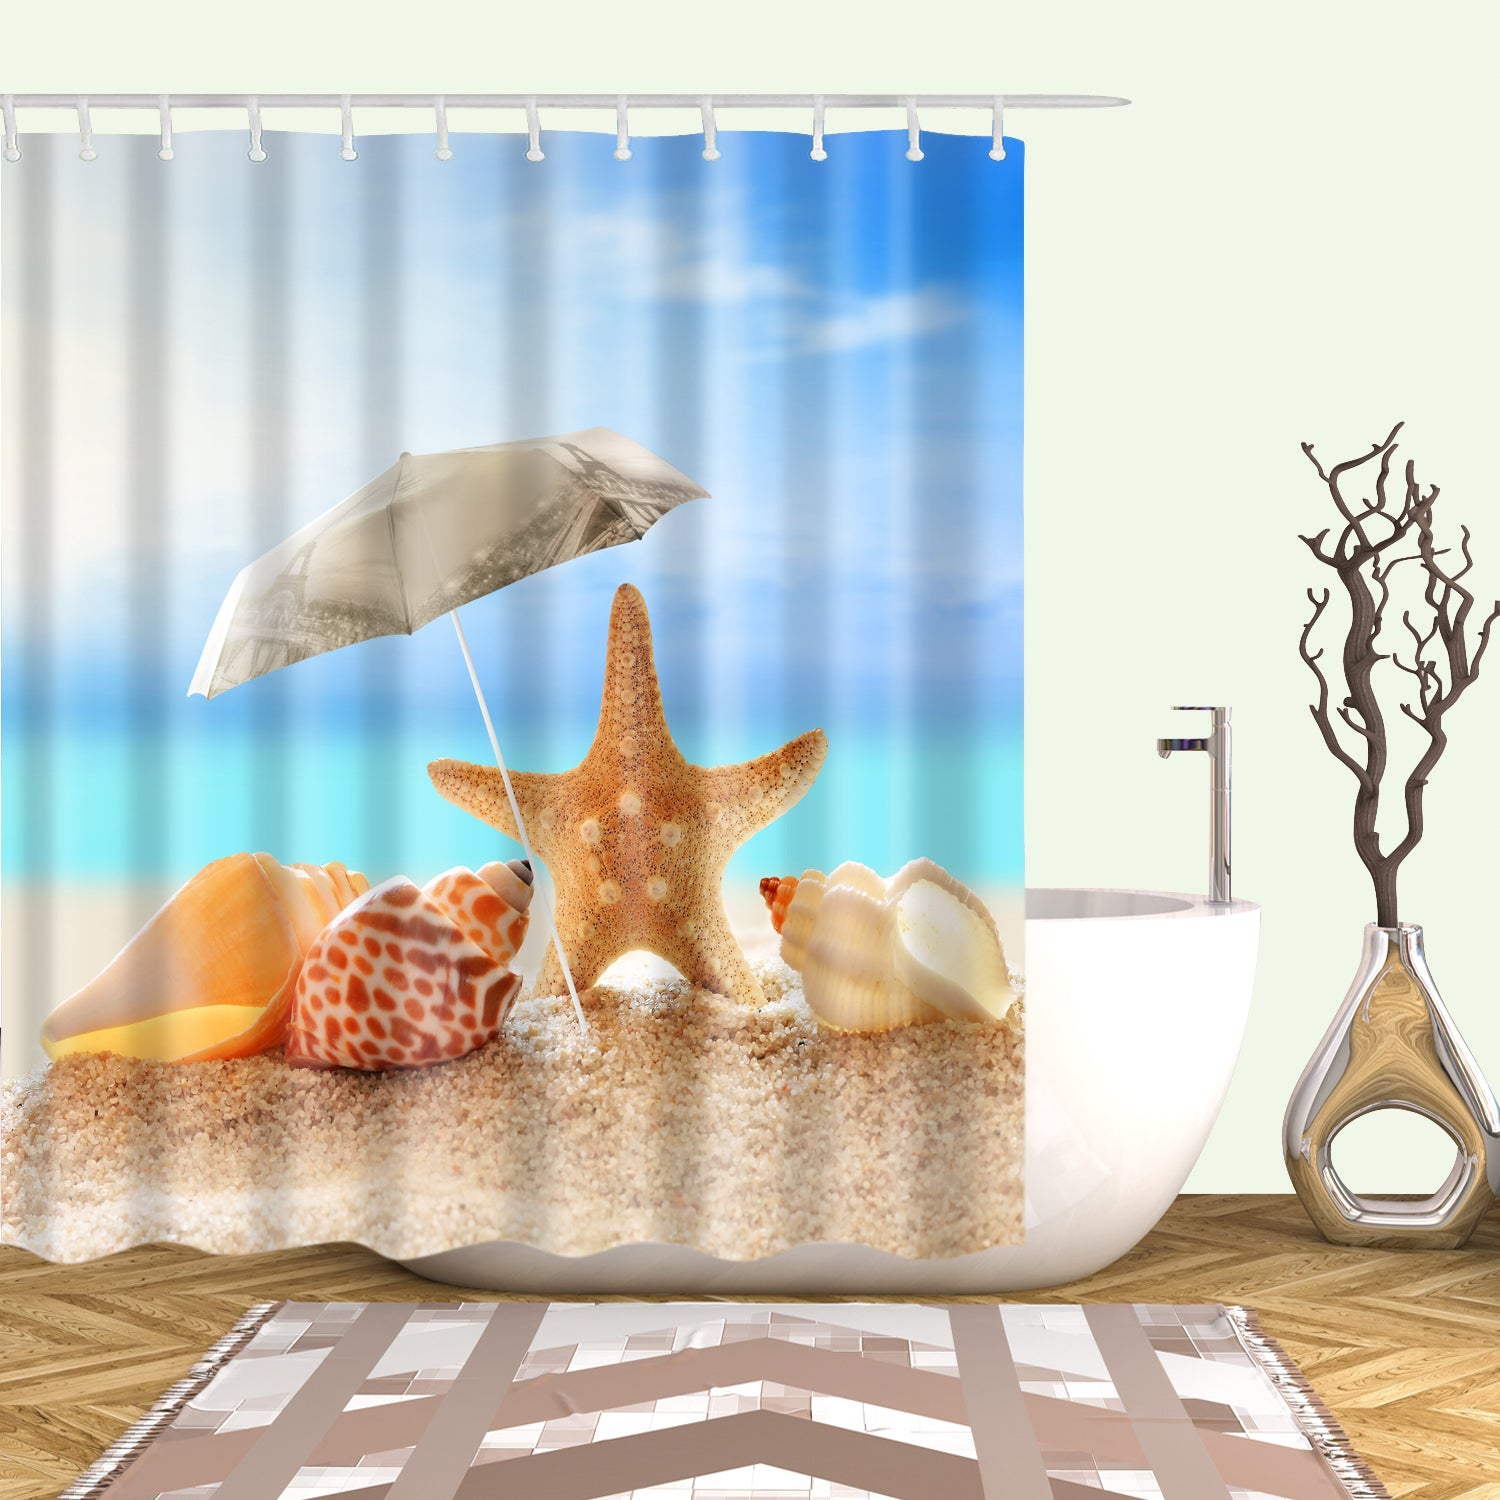 Coral Starfish Shower Curtain Summer Sunbathring Seashell Bathroom Curtains